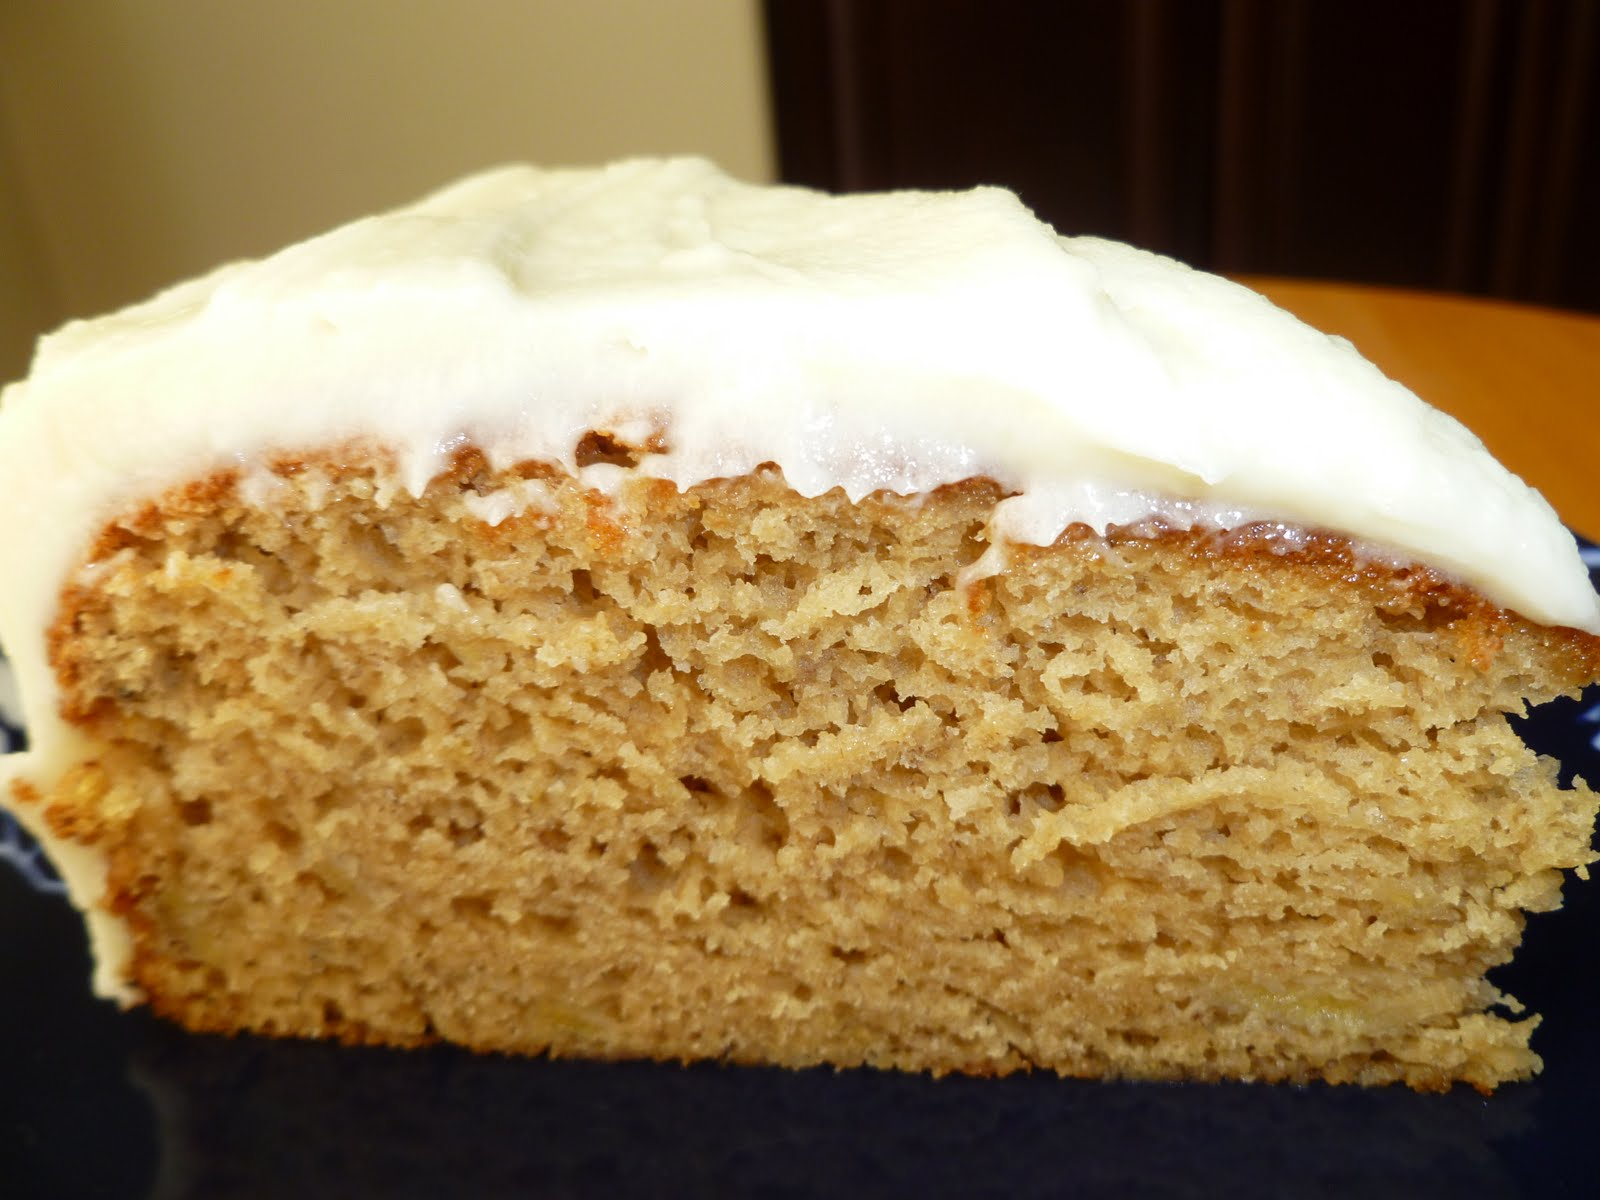 The Pastry Chef S Baking Frosted Banana Cake